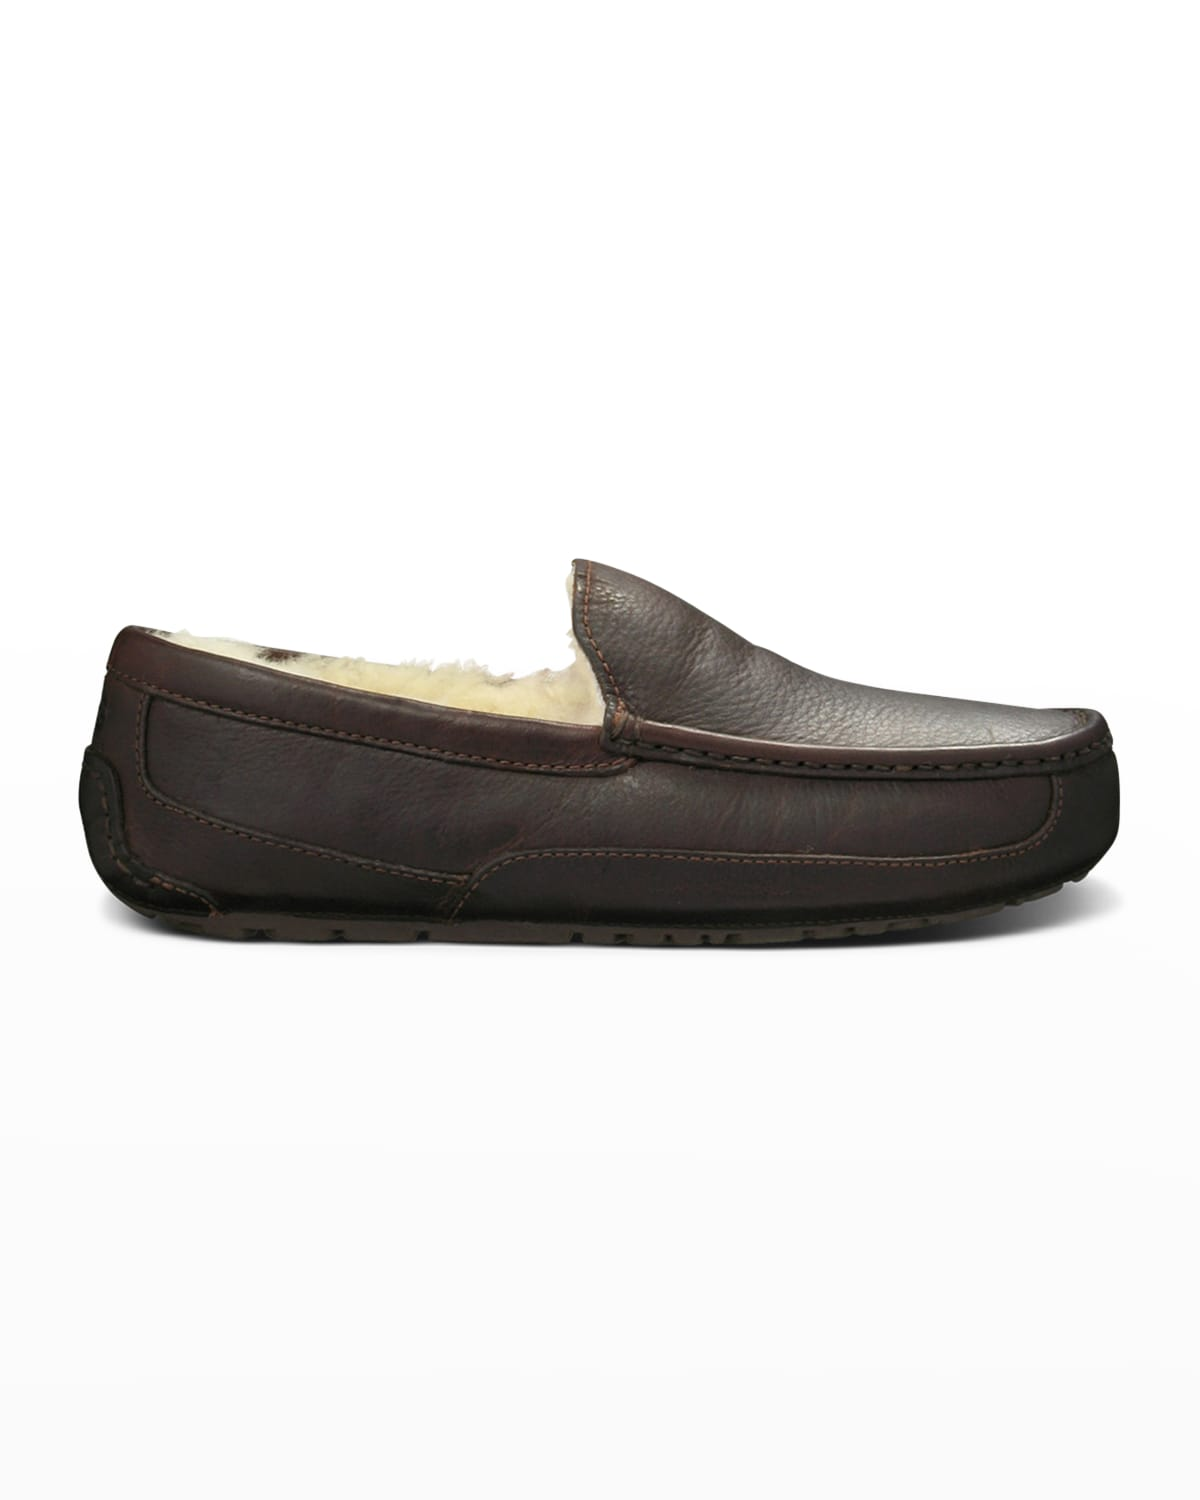 Men's Ascot Water-Resistant Leather Slippers